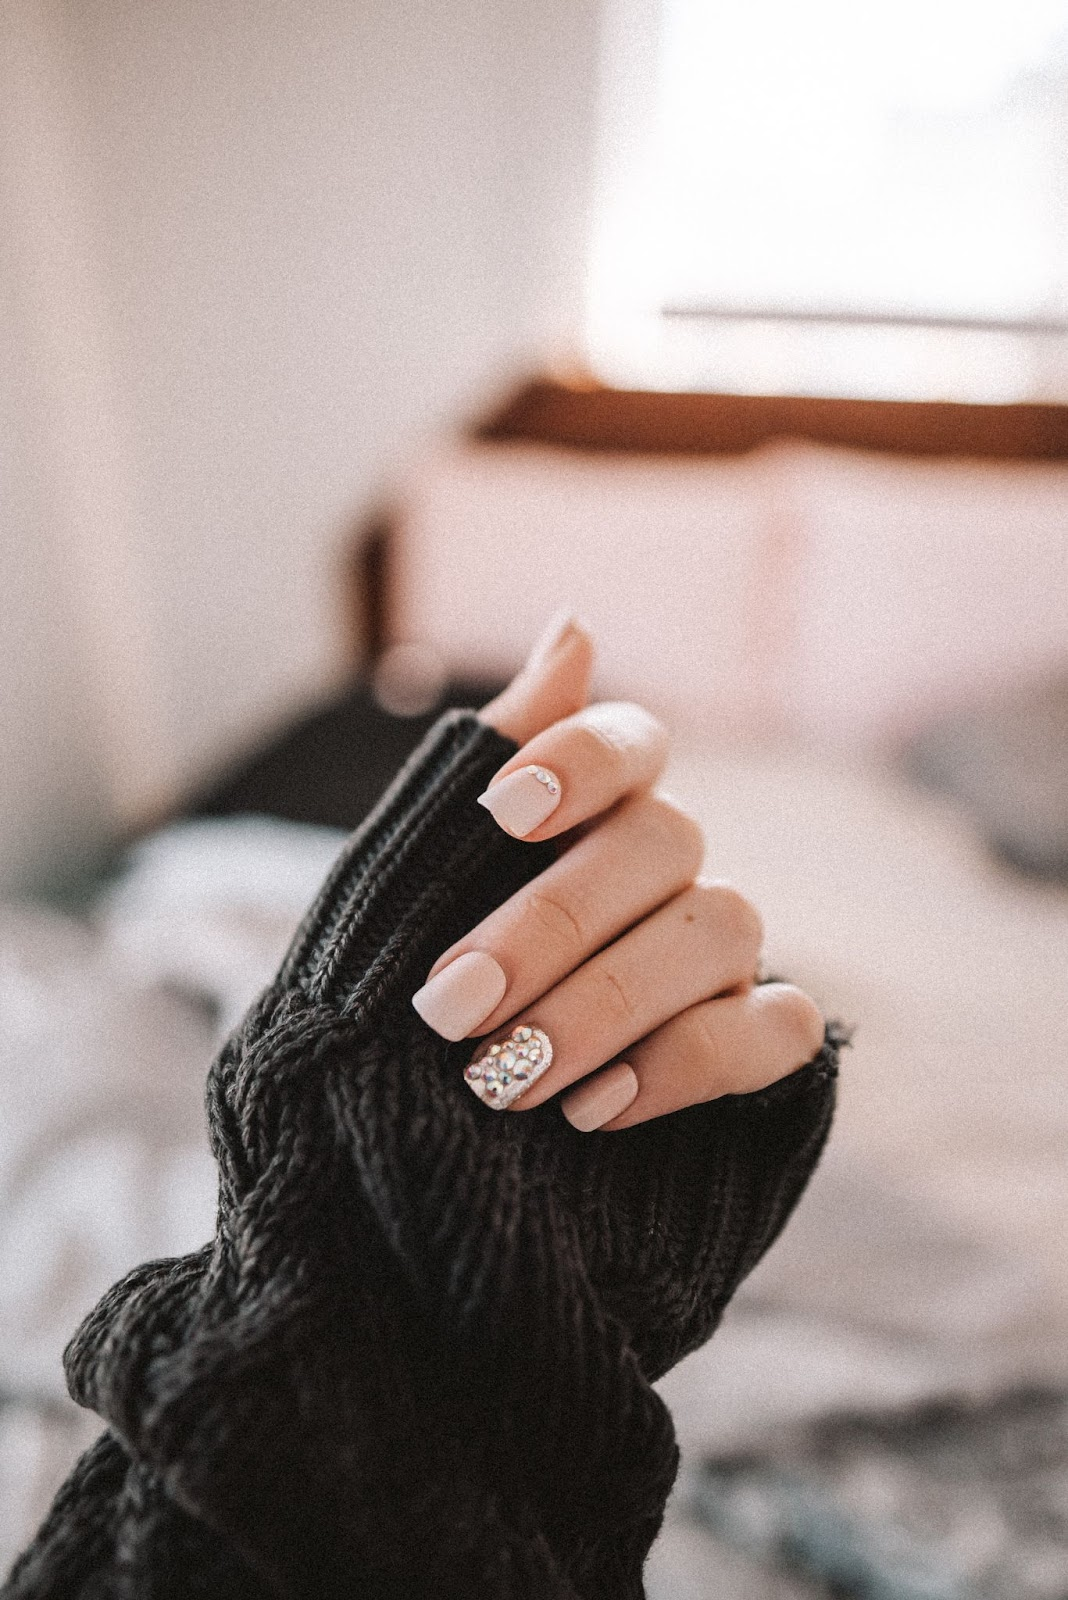 nails with sweater